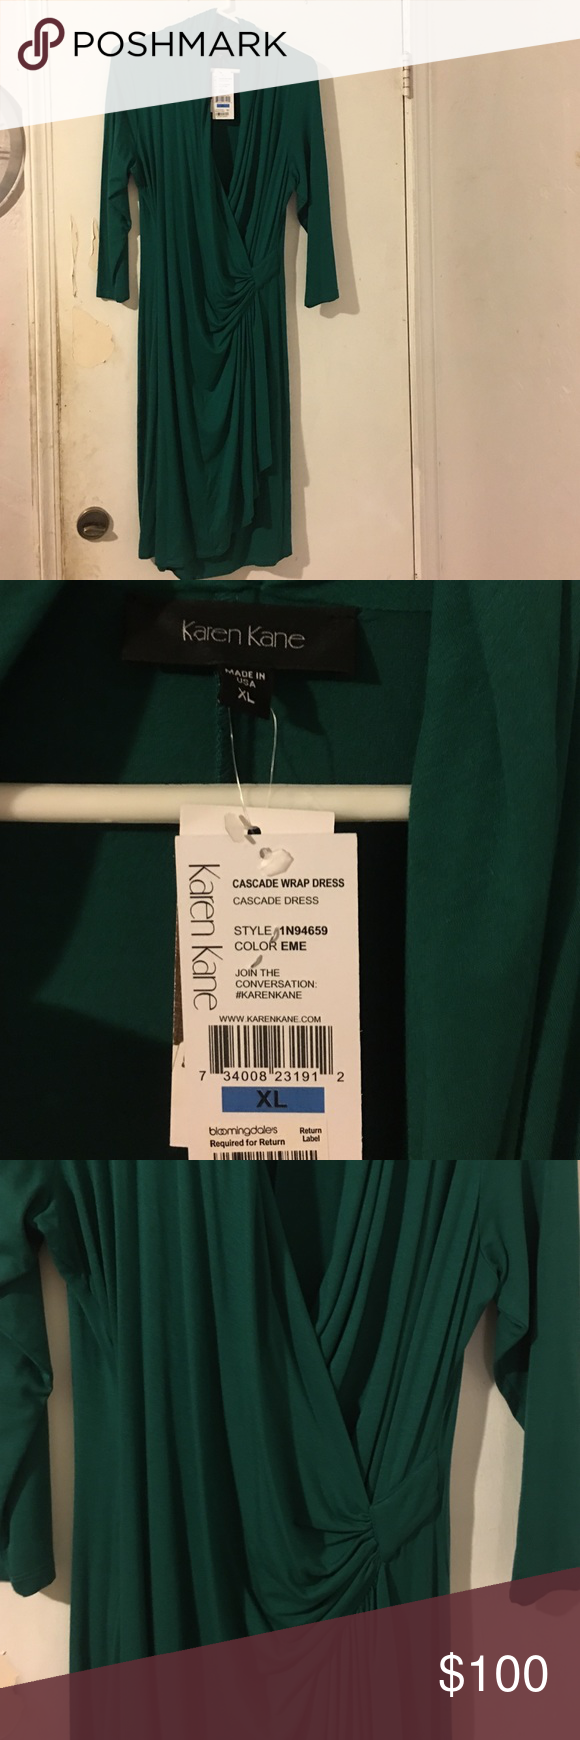 Karen Kane dress Authentic excellent condition brand-new never been worn smoke free home great for occasion Karen Kane Dresses Long Sleeve